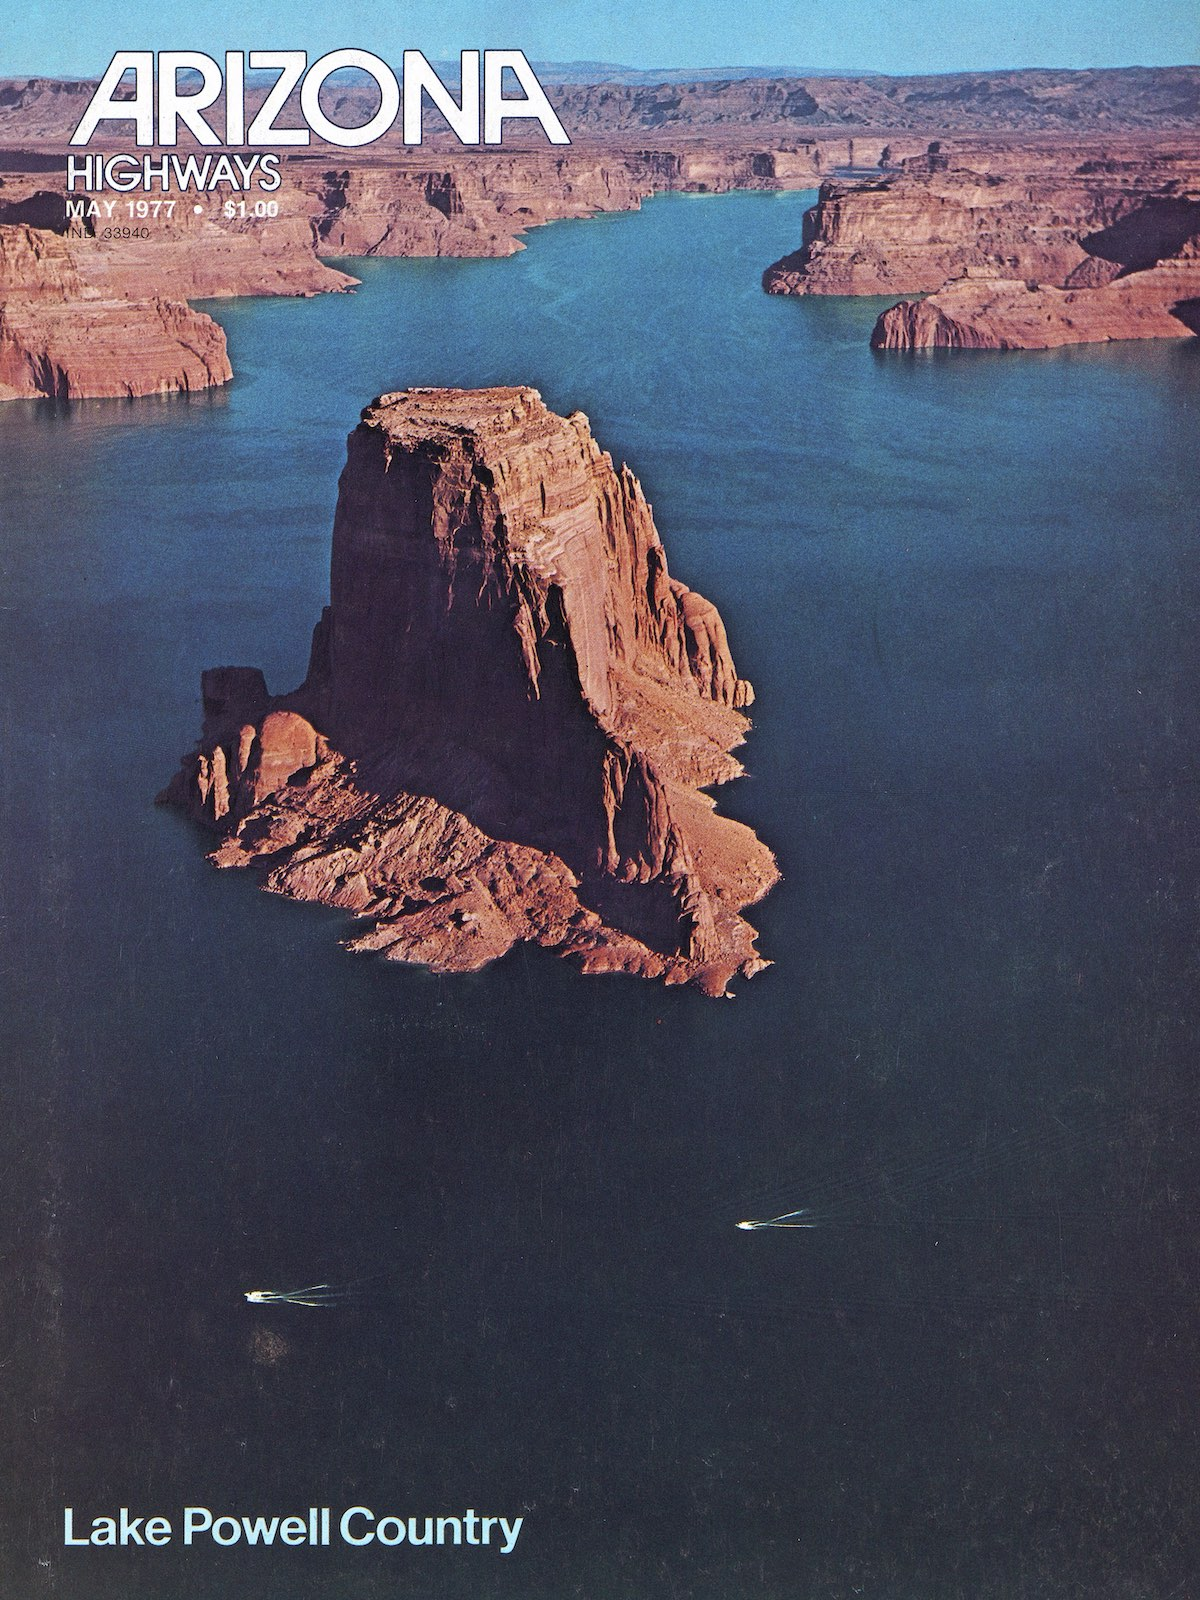 May 1977 cover of Arizona Highways